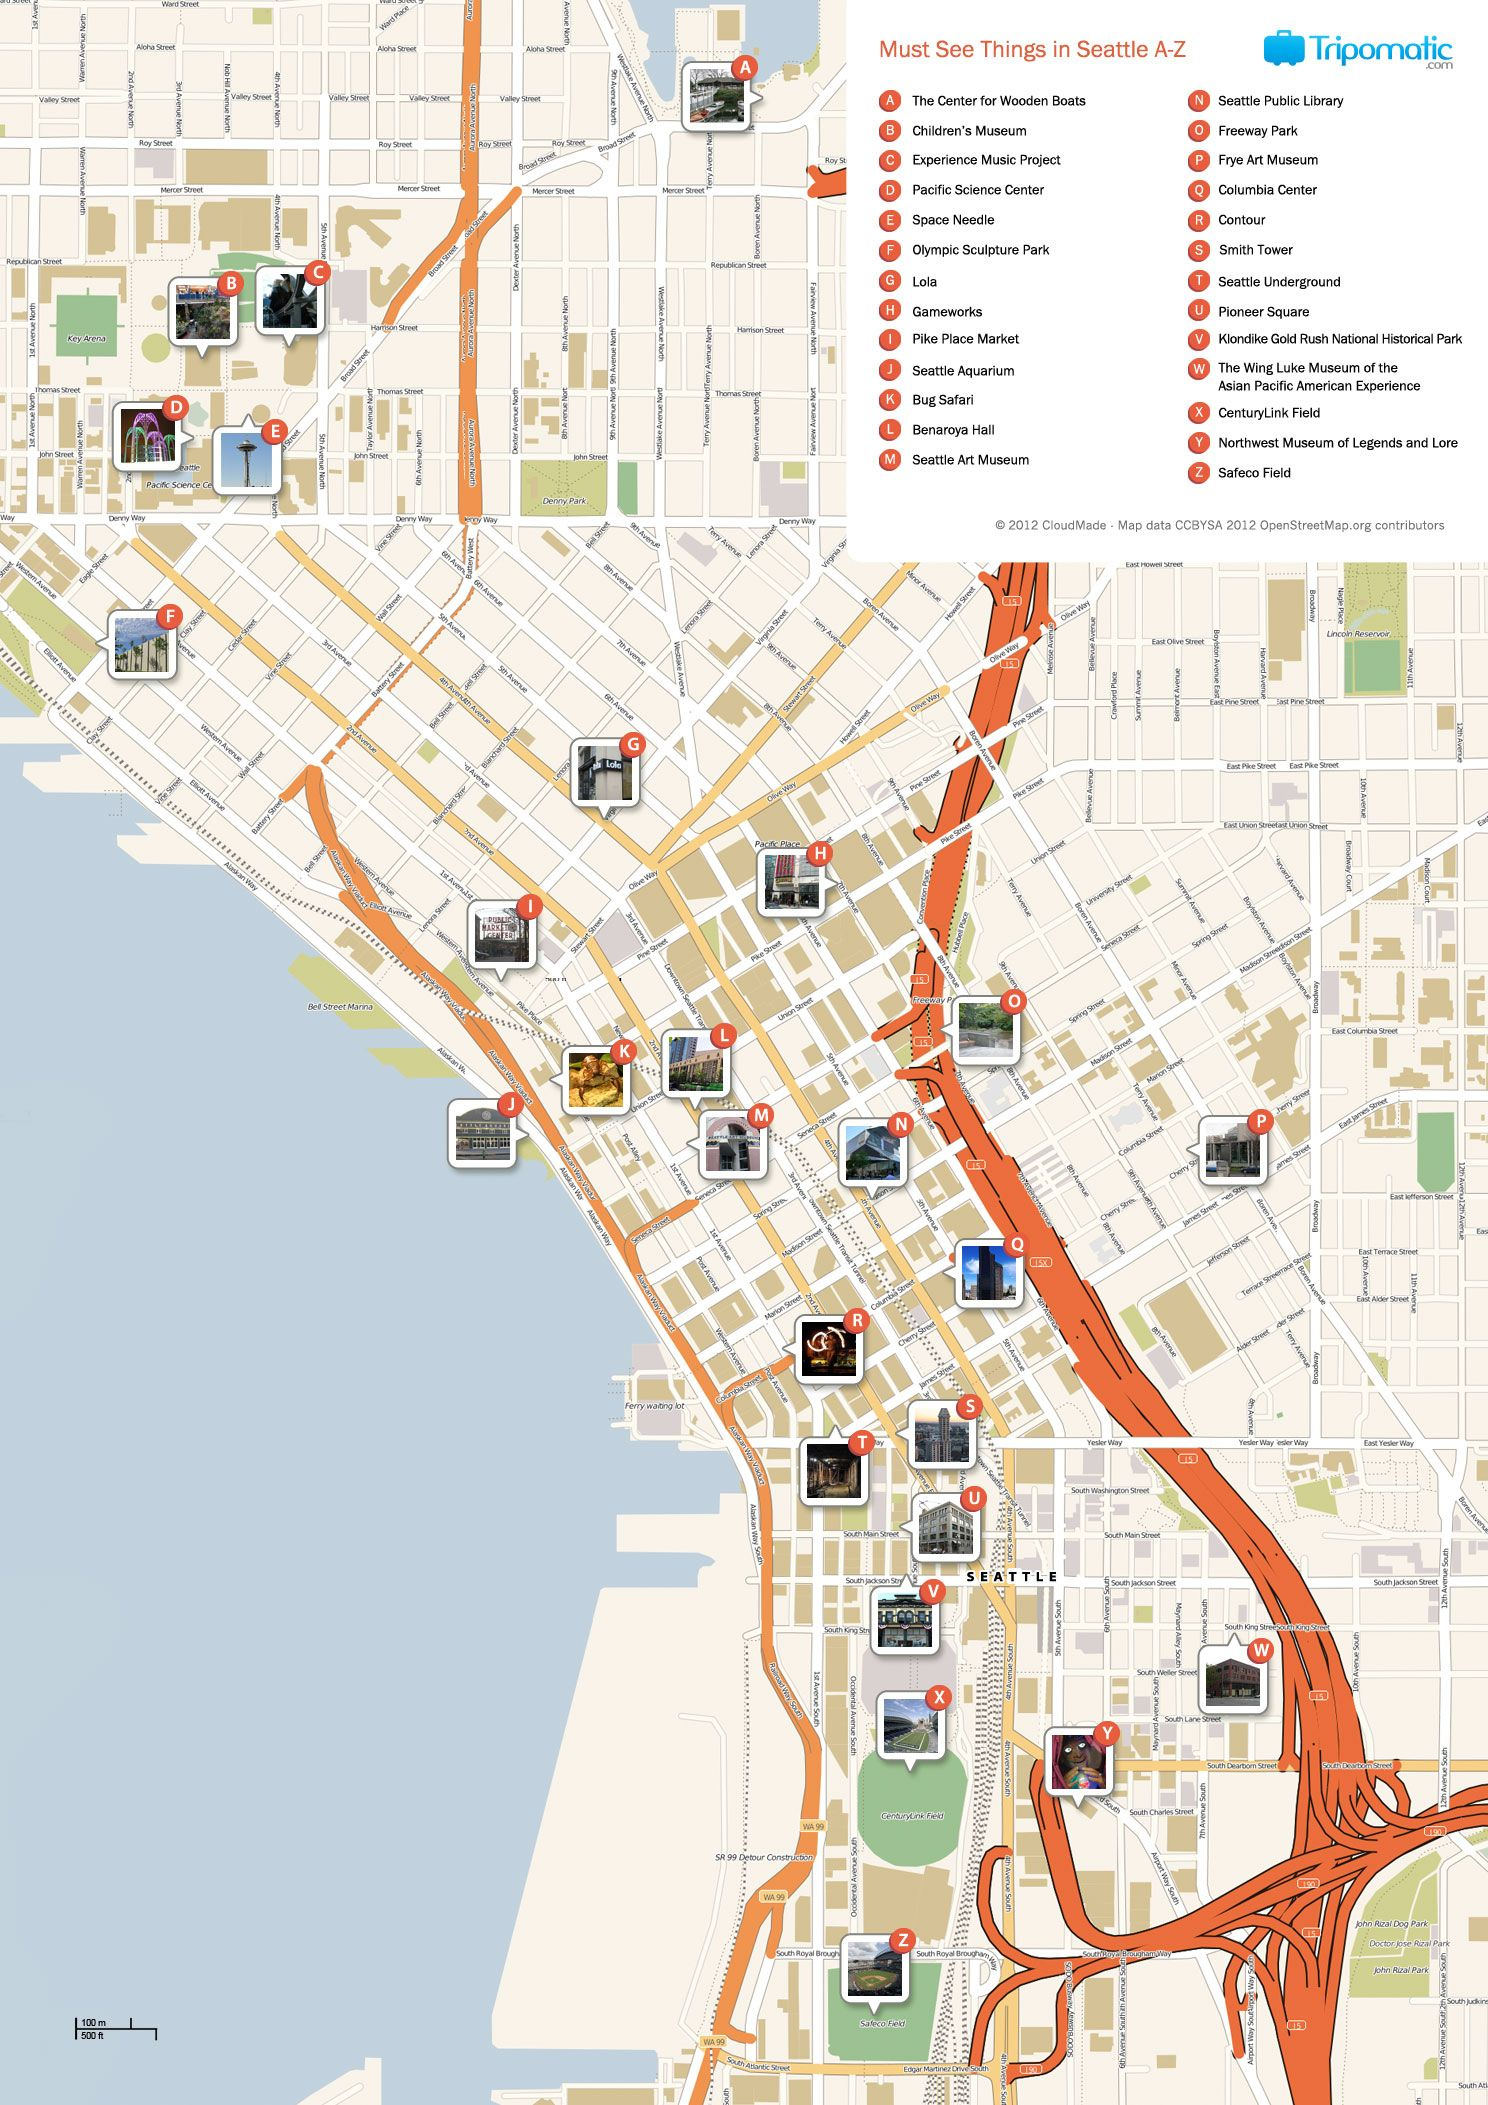 Seattle Printable Tourist Map | Free Tourist Maps ✈ | Pinterest - Printable Map Of Seattle Area